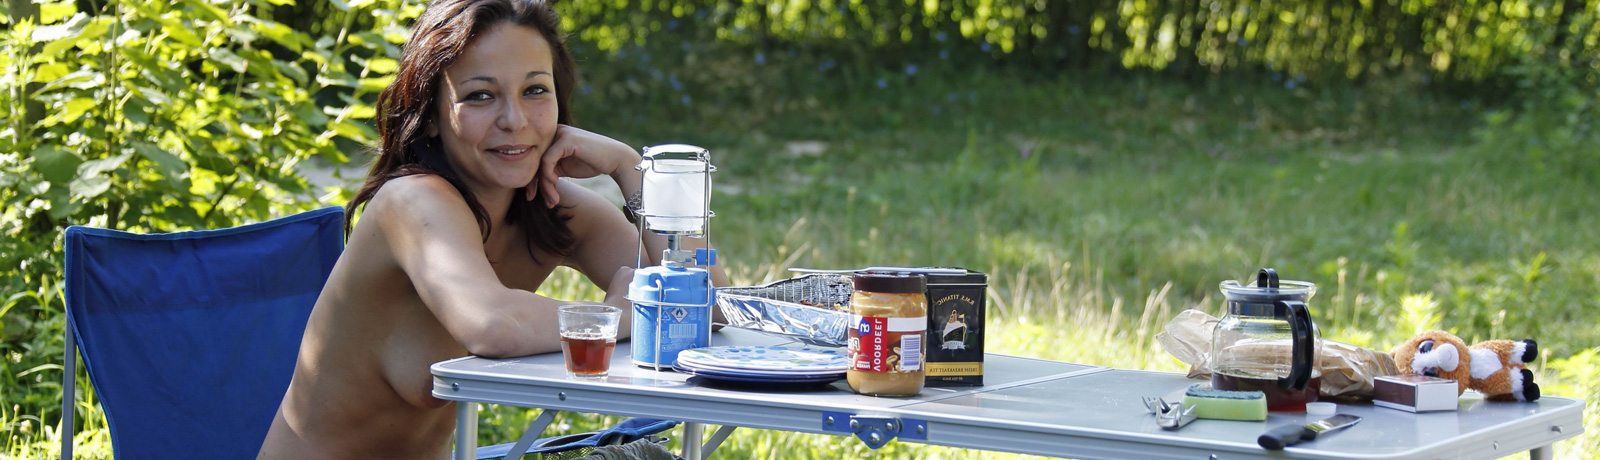 Jeune fille camping